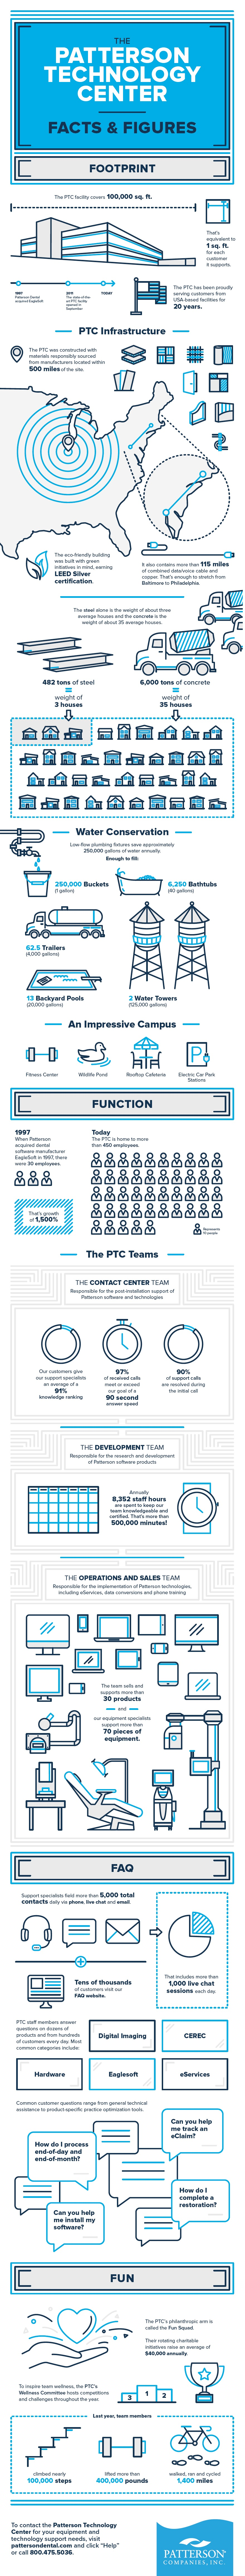 Patterson Technology Center Facts & Figures Infographic